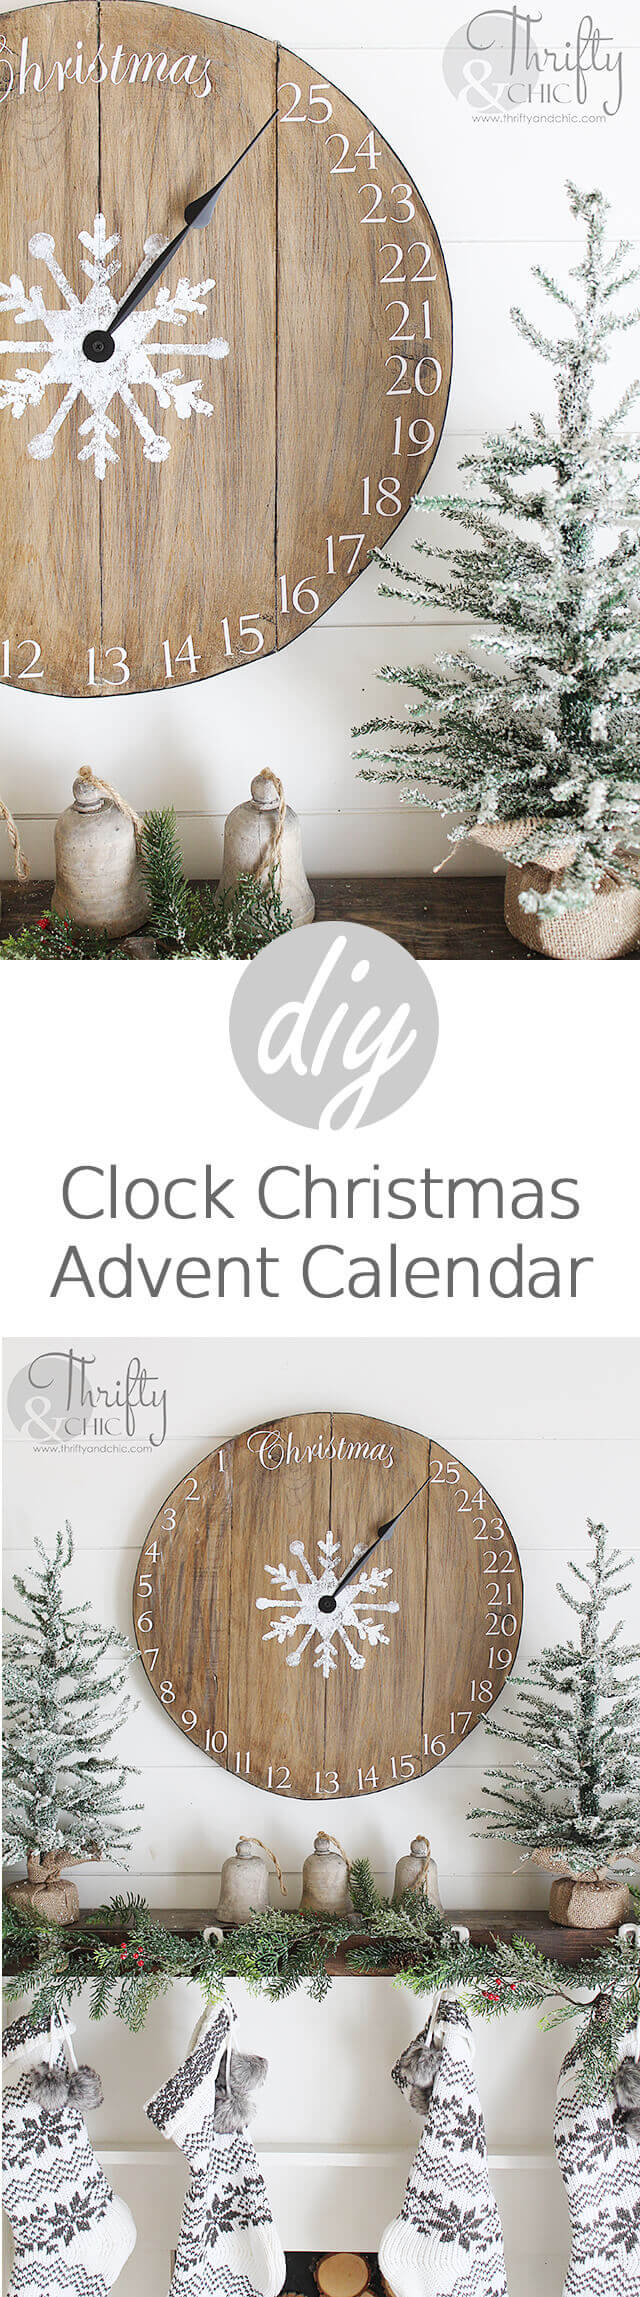 DIY Christmas Clock Advent Calendar